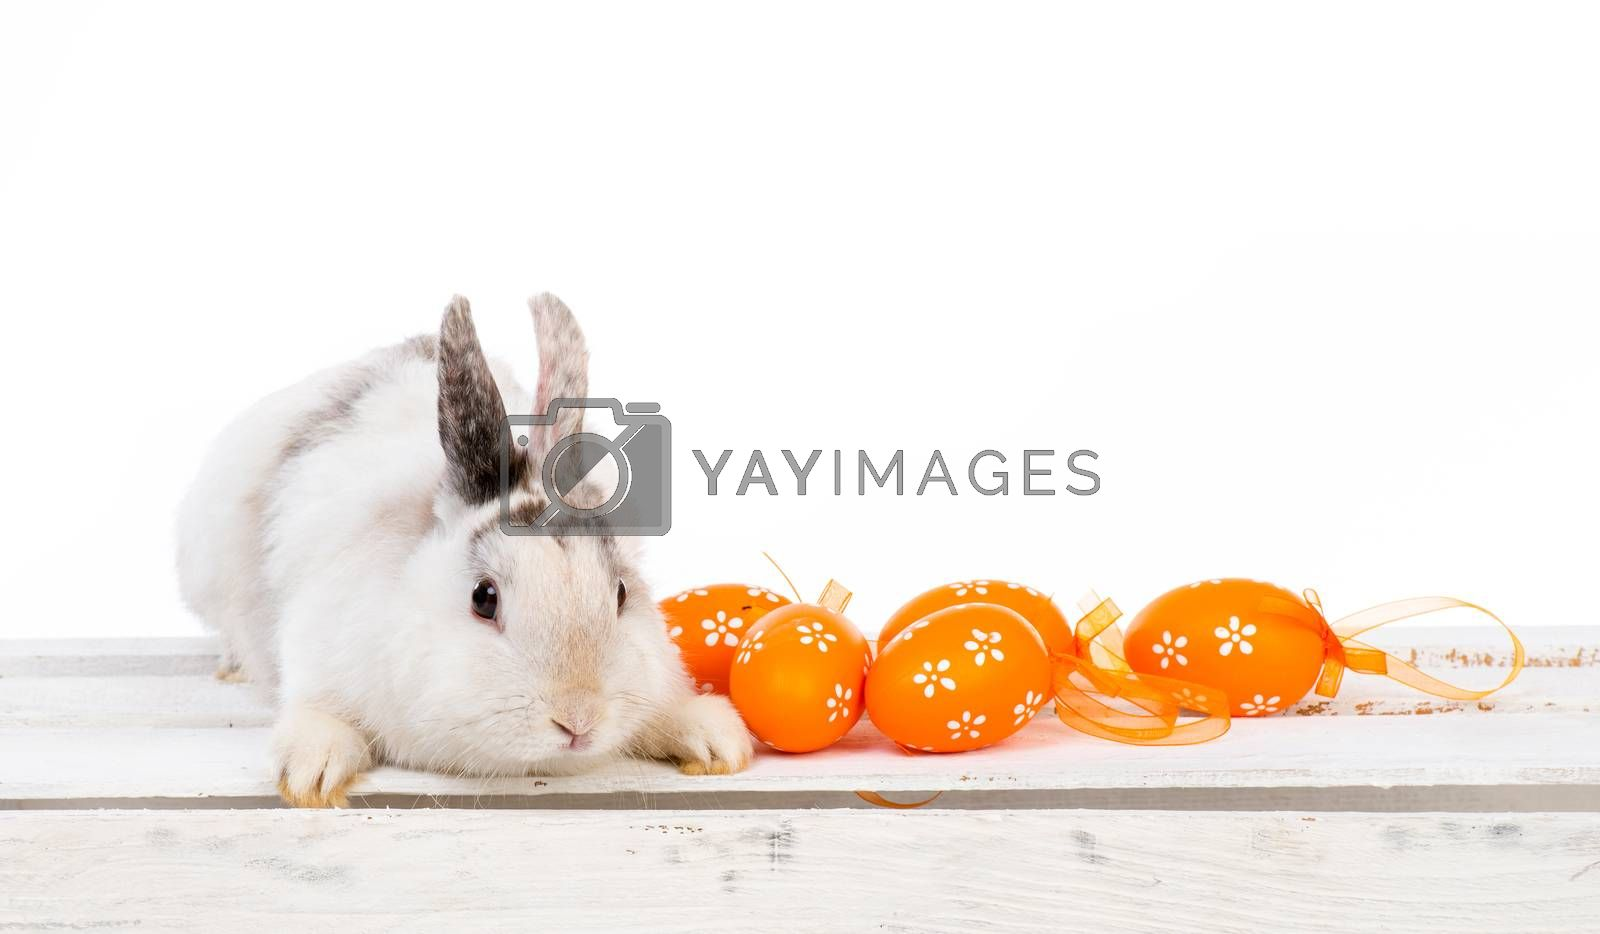 Royalty free image of rabbit with Easter eggs by GekaSkr